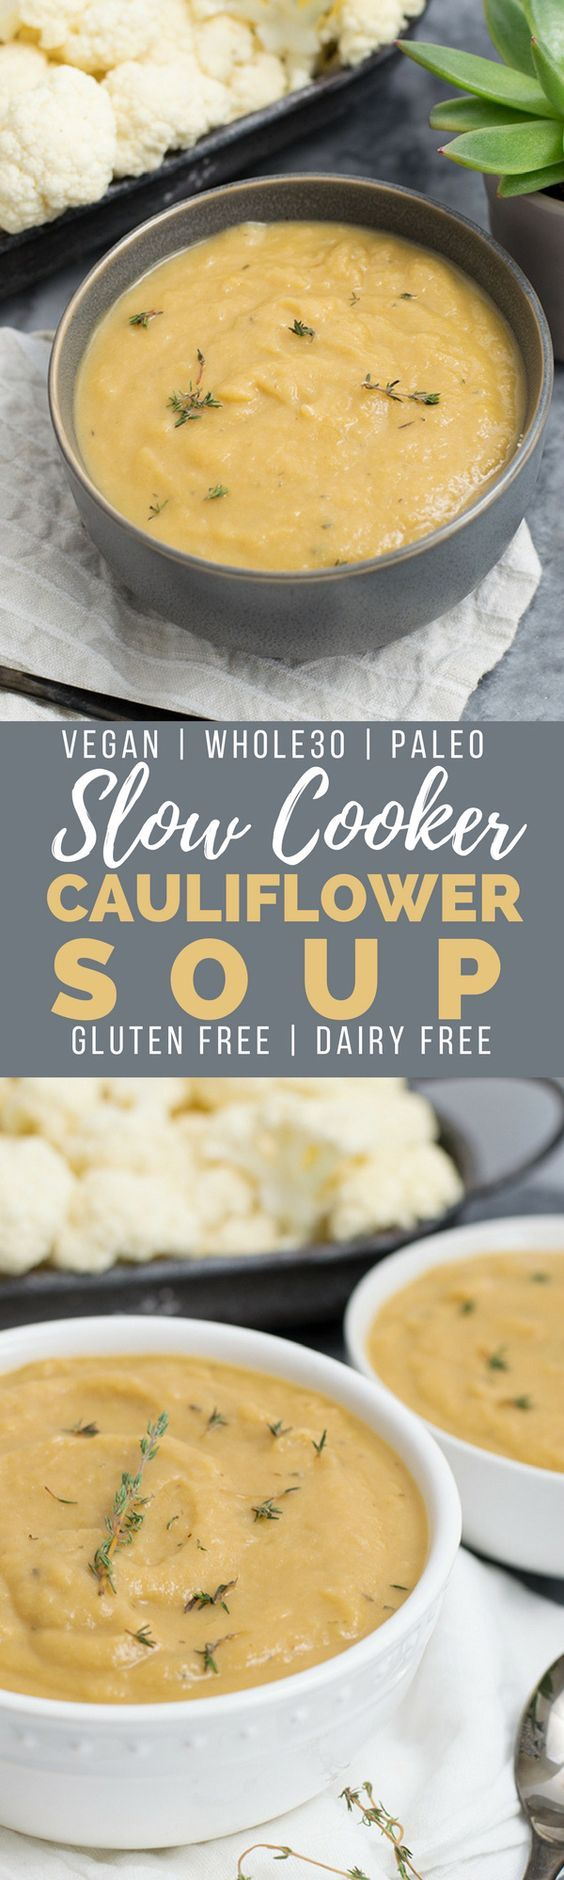 Slow cooker cauliflower soup is going to become your new favorite veggies soup! Vegan, paleo, Whole30. Perfect weeknight dinner recipe #slowcooker #vegan #soup #cauiflower